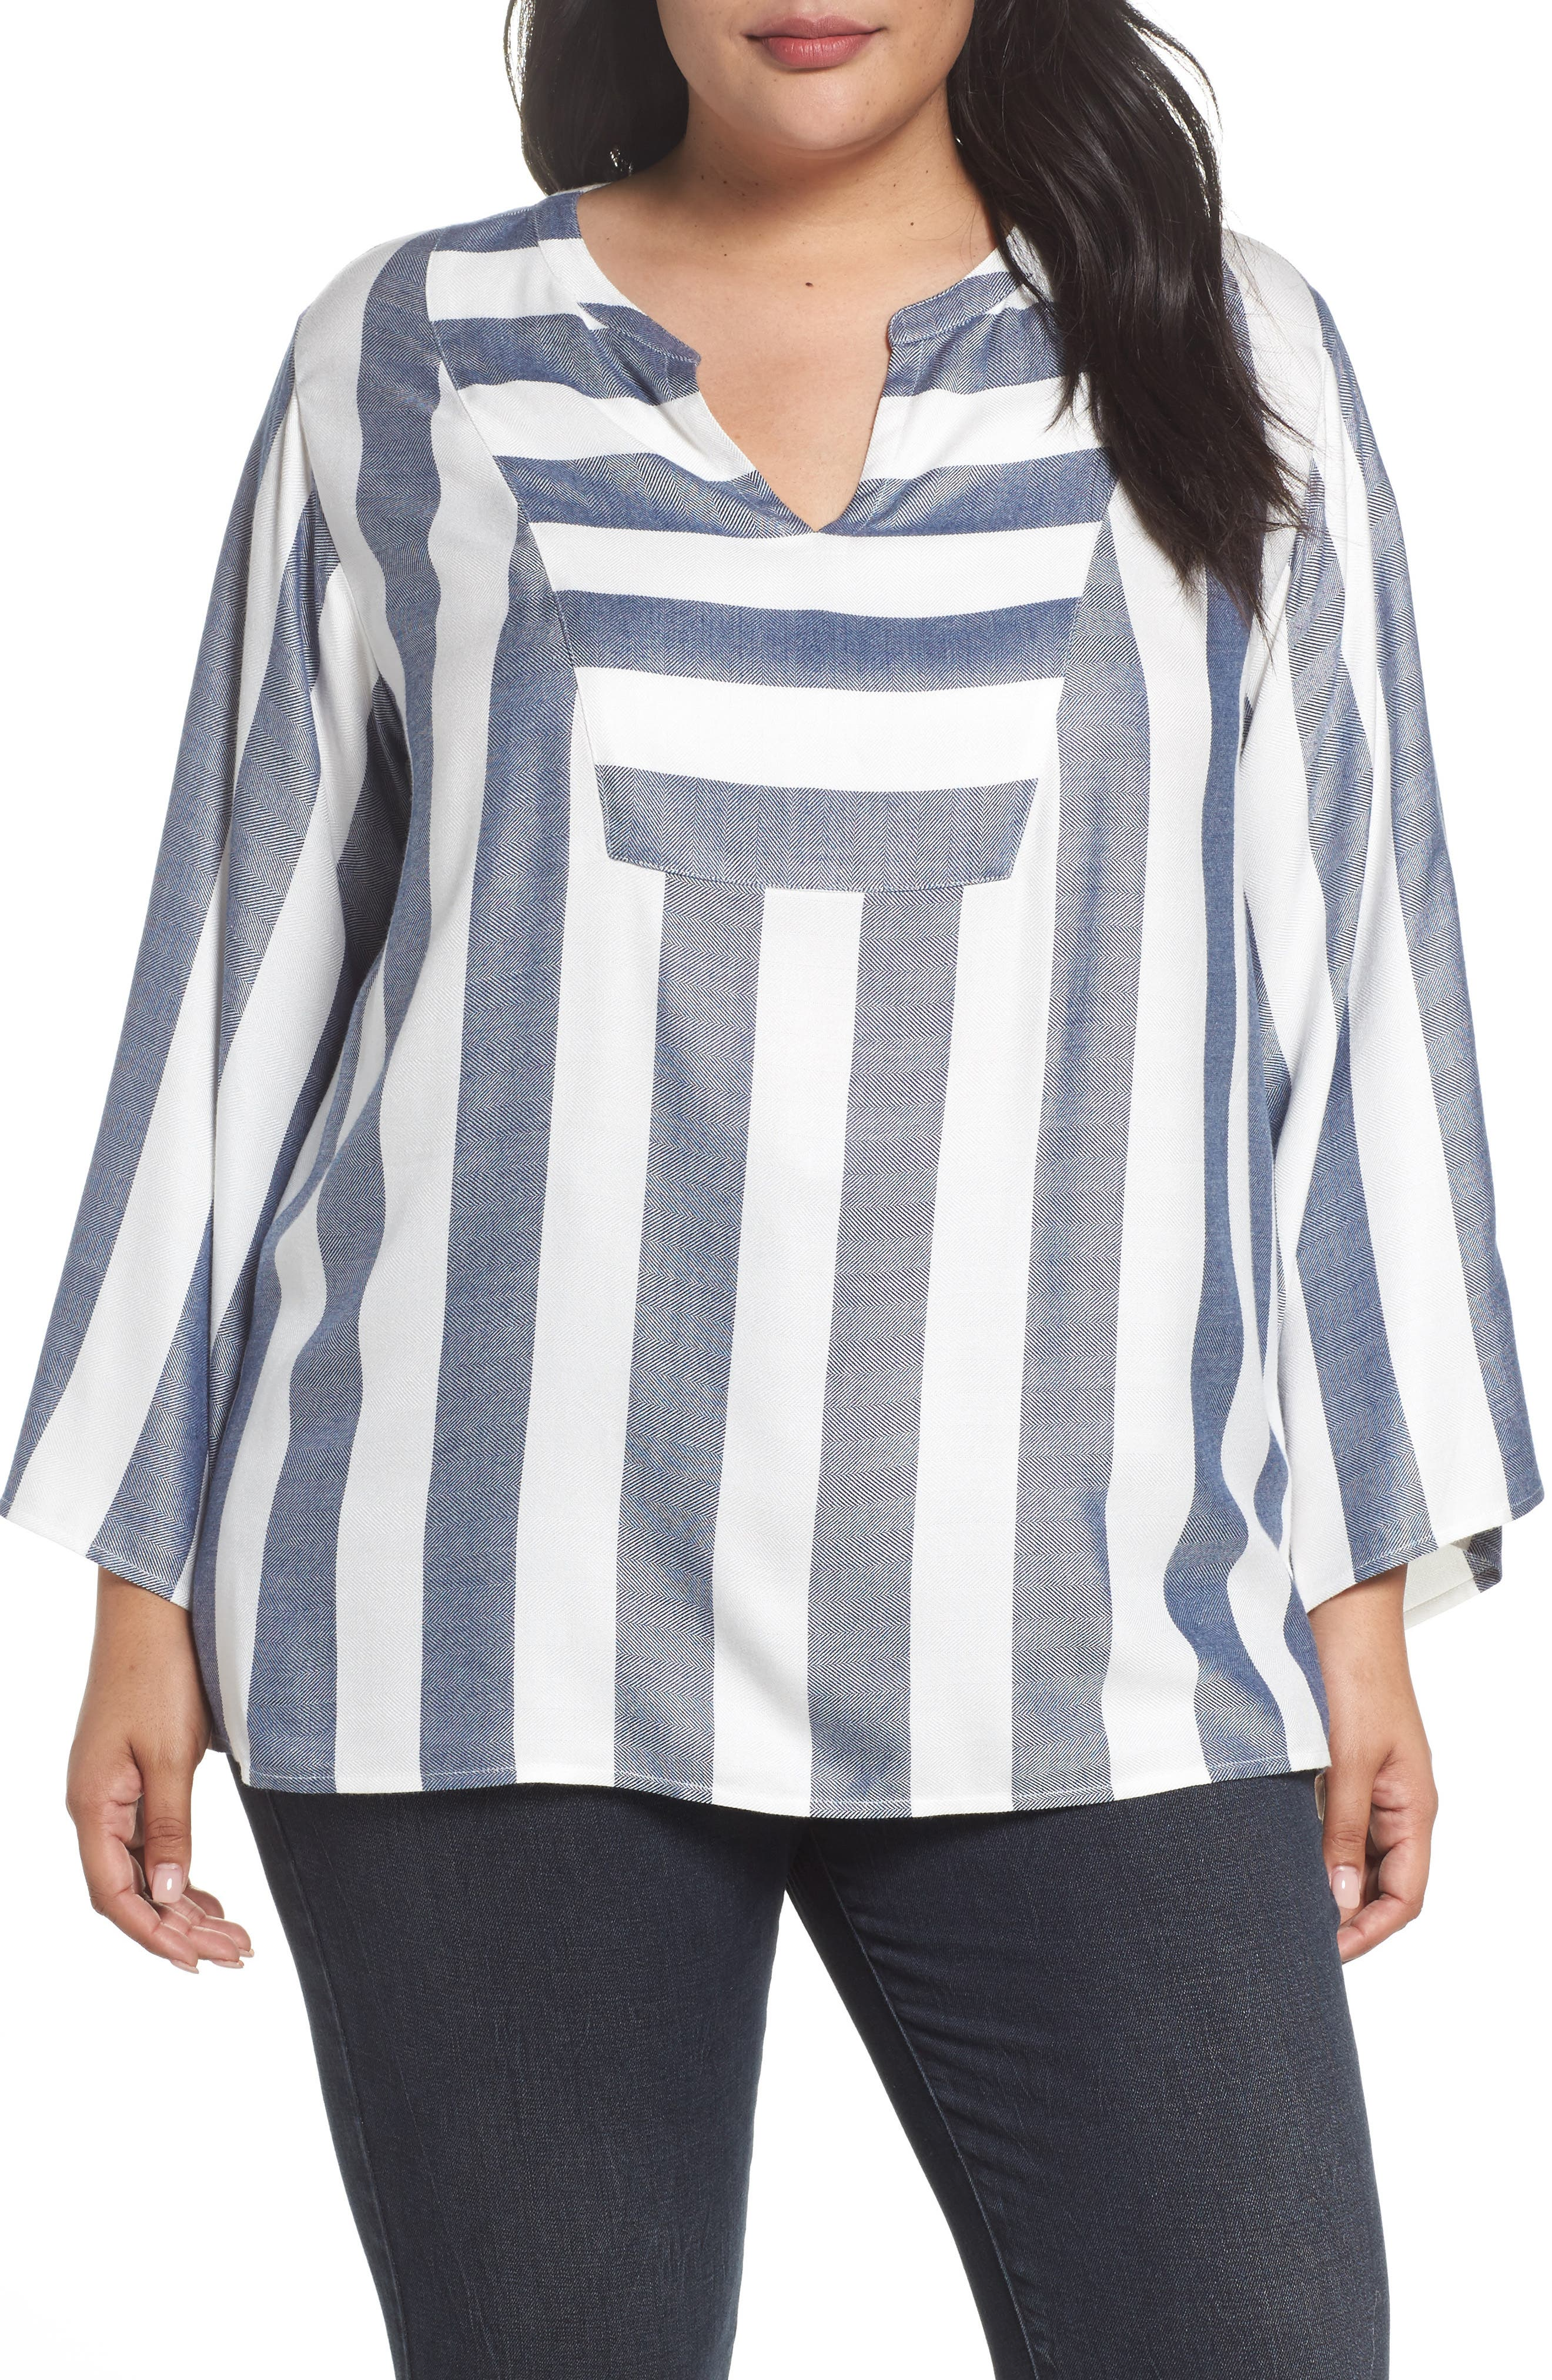 Alternate Image 1 Selected - Two by Vince Camuto Bell Sleeve Stripe Top (Plus Size)